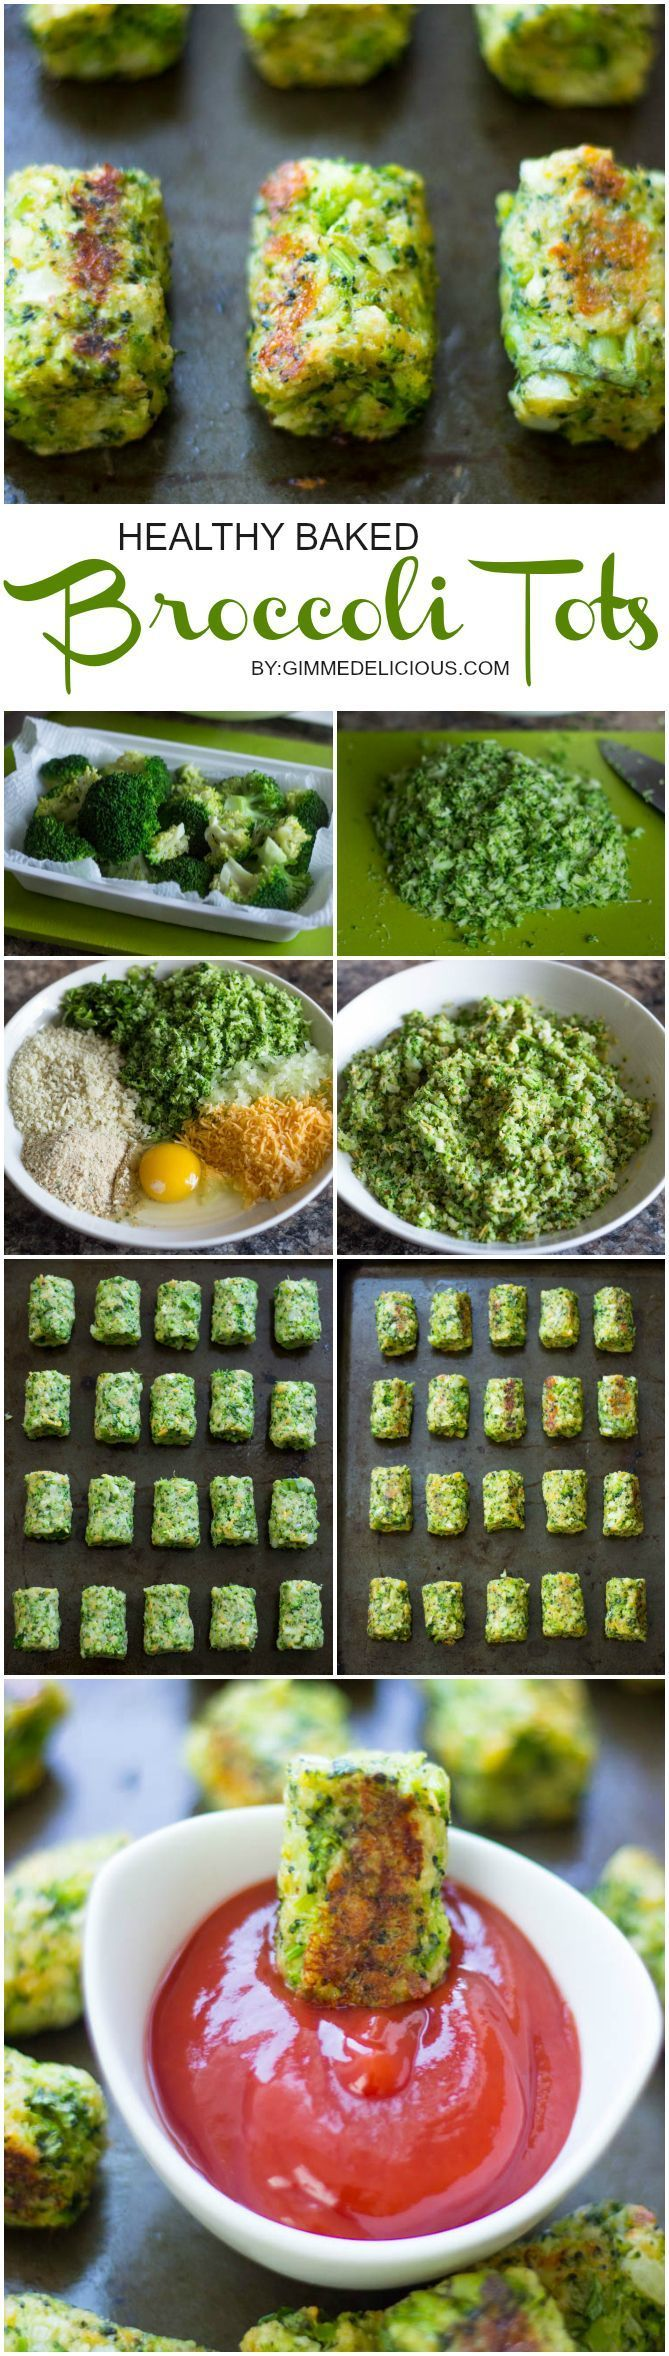 Who knew green tots could be so good!